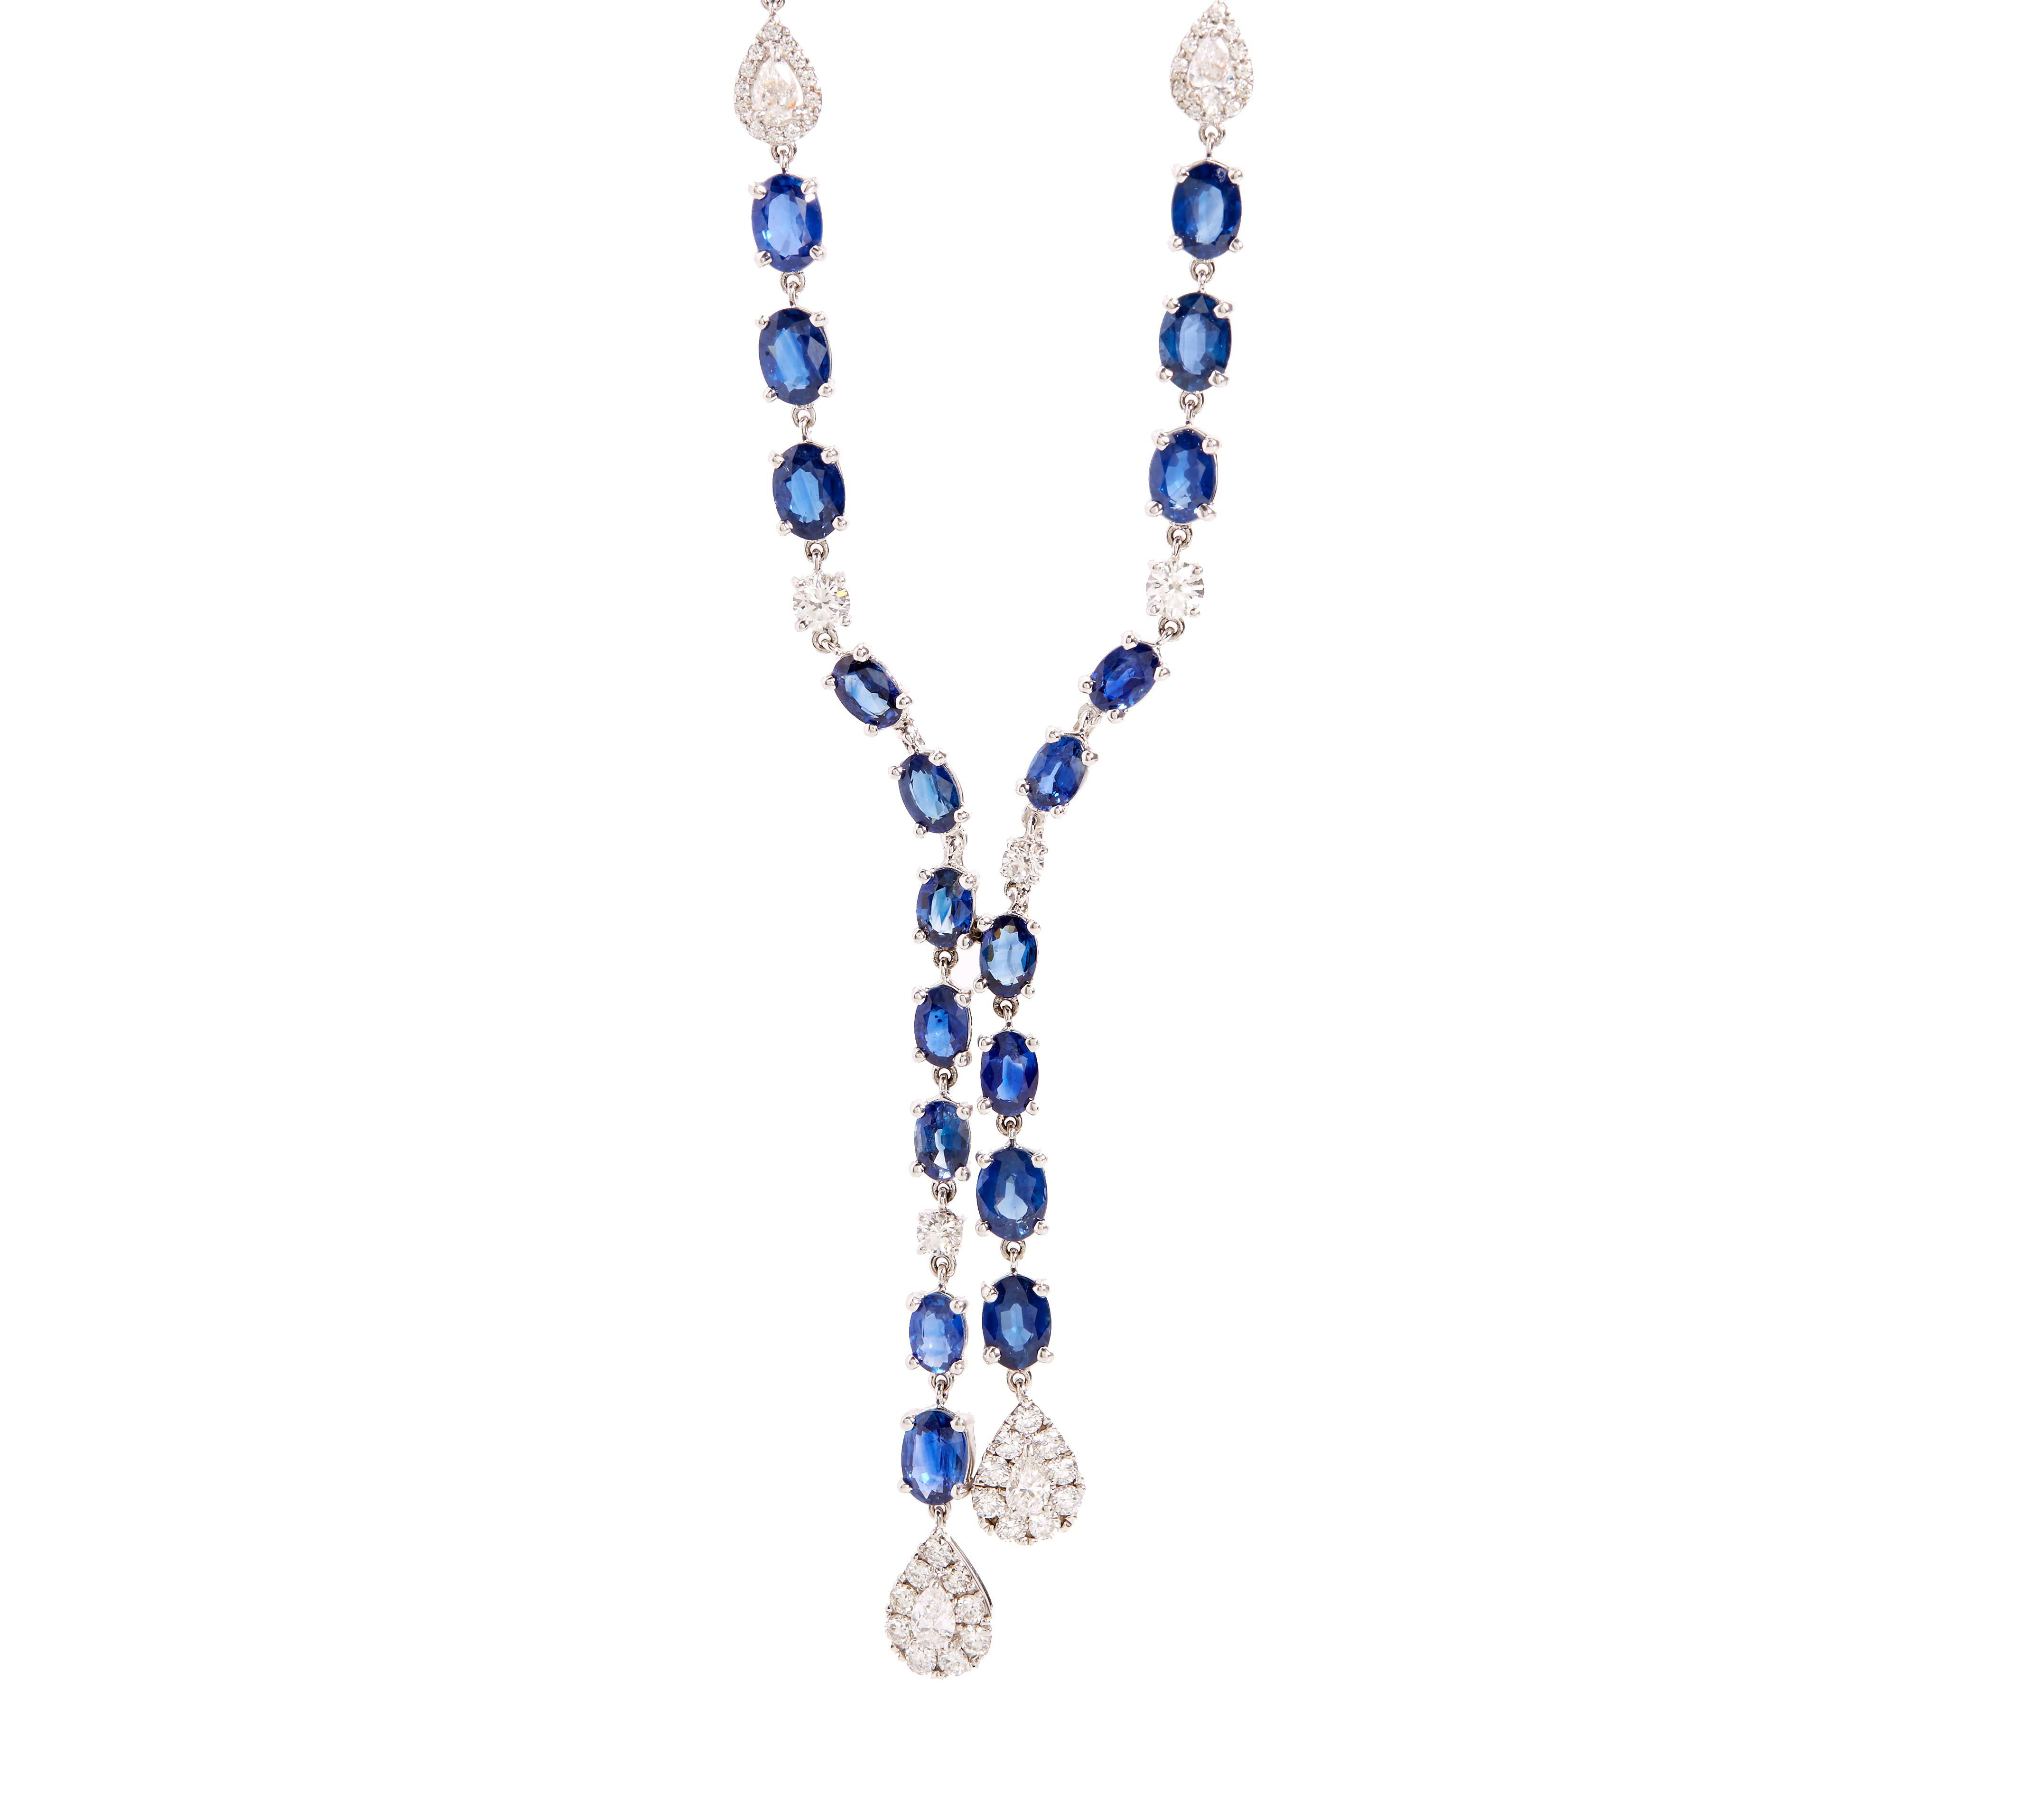 Lyst – Mimi So Couture Diamond And Sapphire Lariat Necklace Regarding Recent Lariat Sapphire And Diamond Necklaces (View 20 of 25)